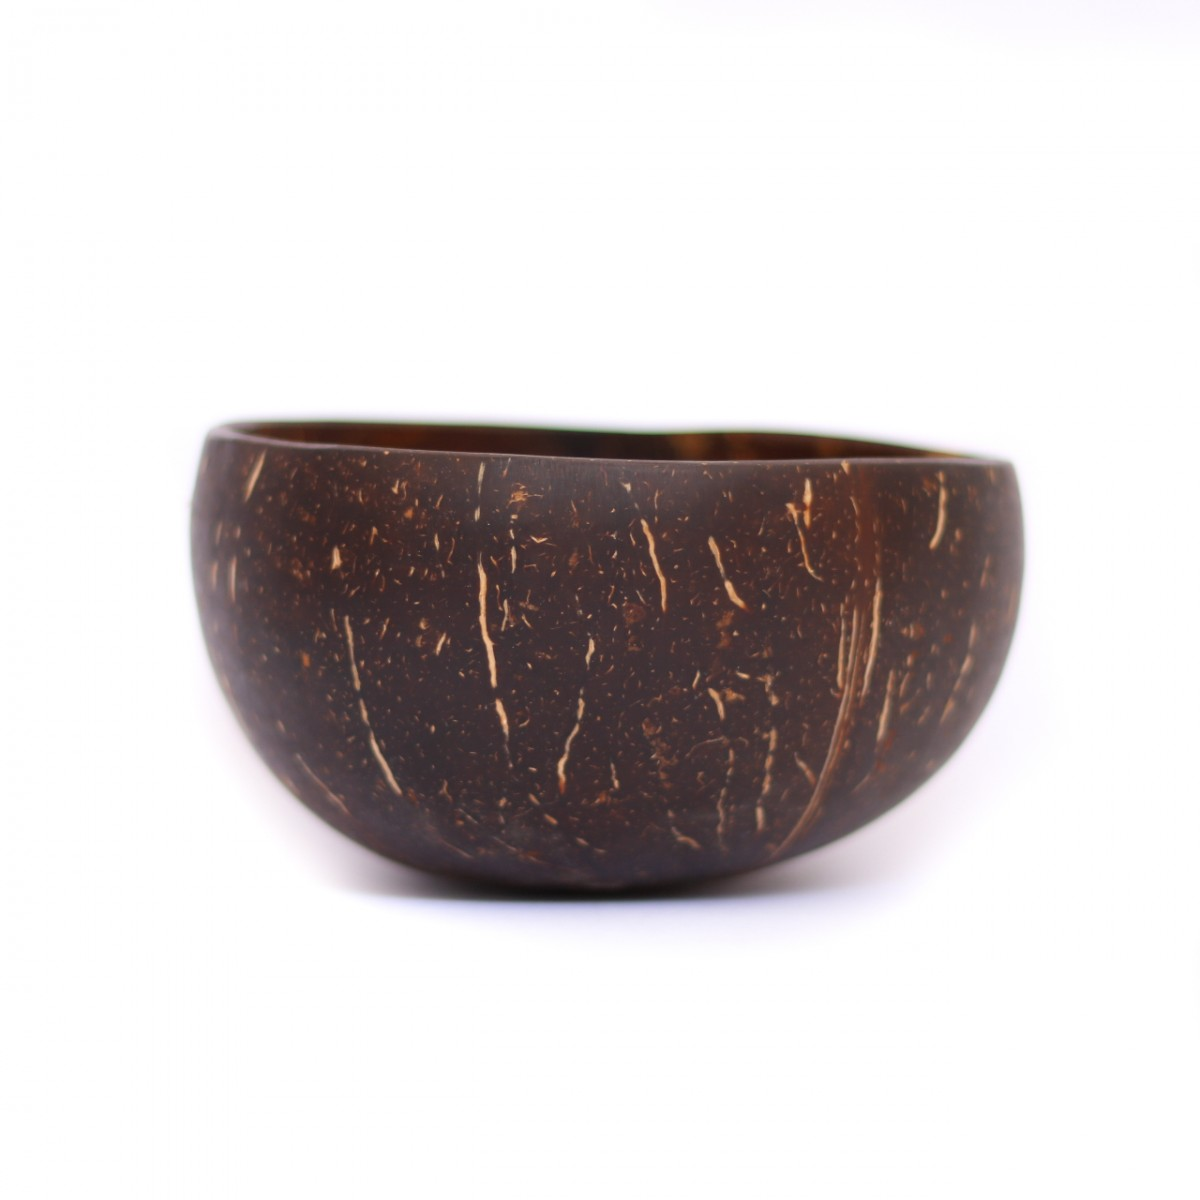 Polished coconut bowl